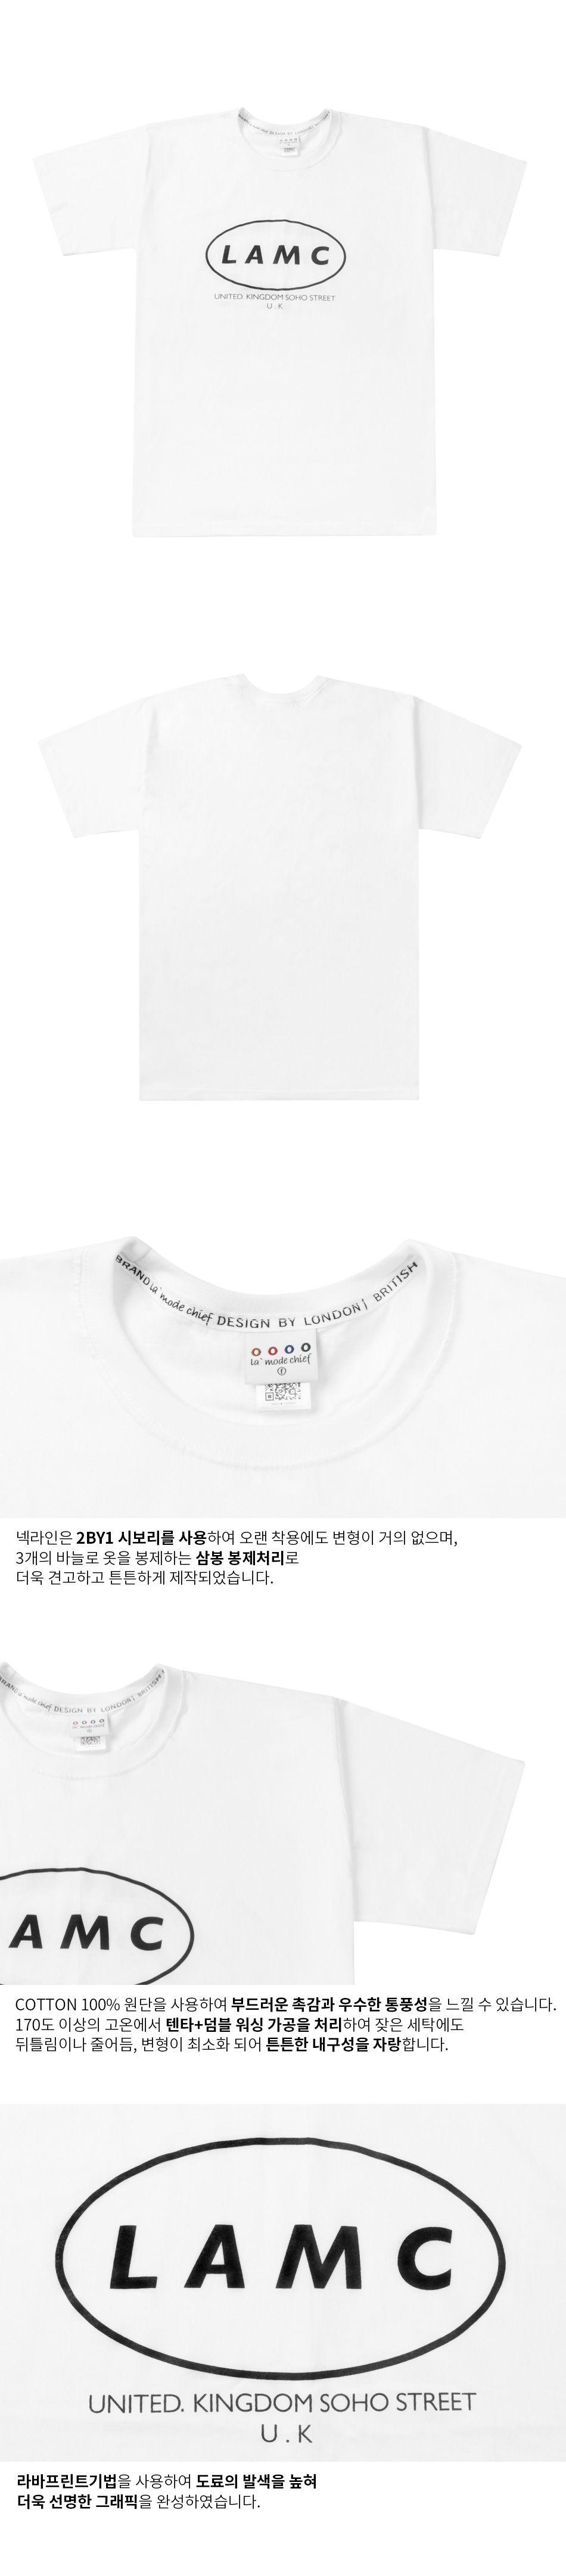 라모드치프 LAMC CIRCLE LOGO OVERFIT SHORT SLEEVE (WHITE)